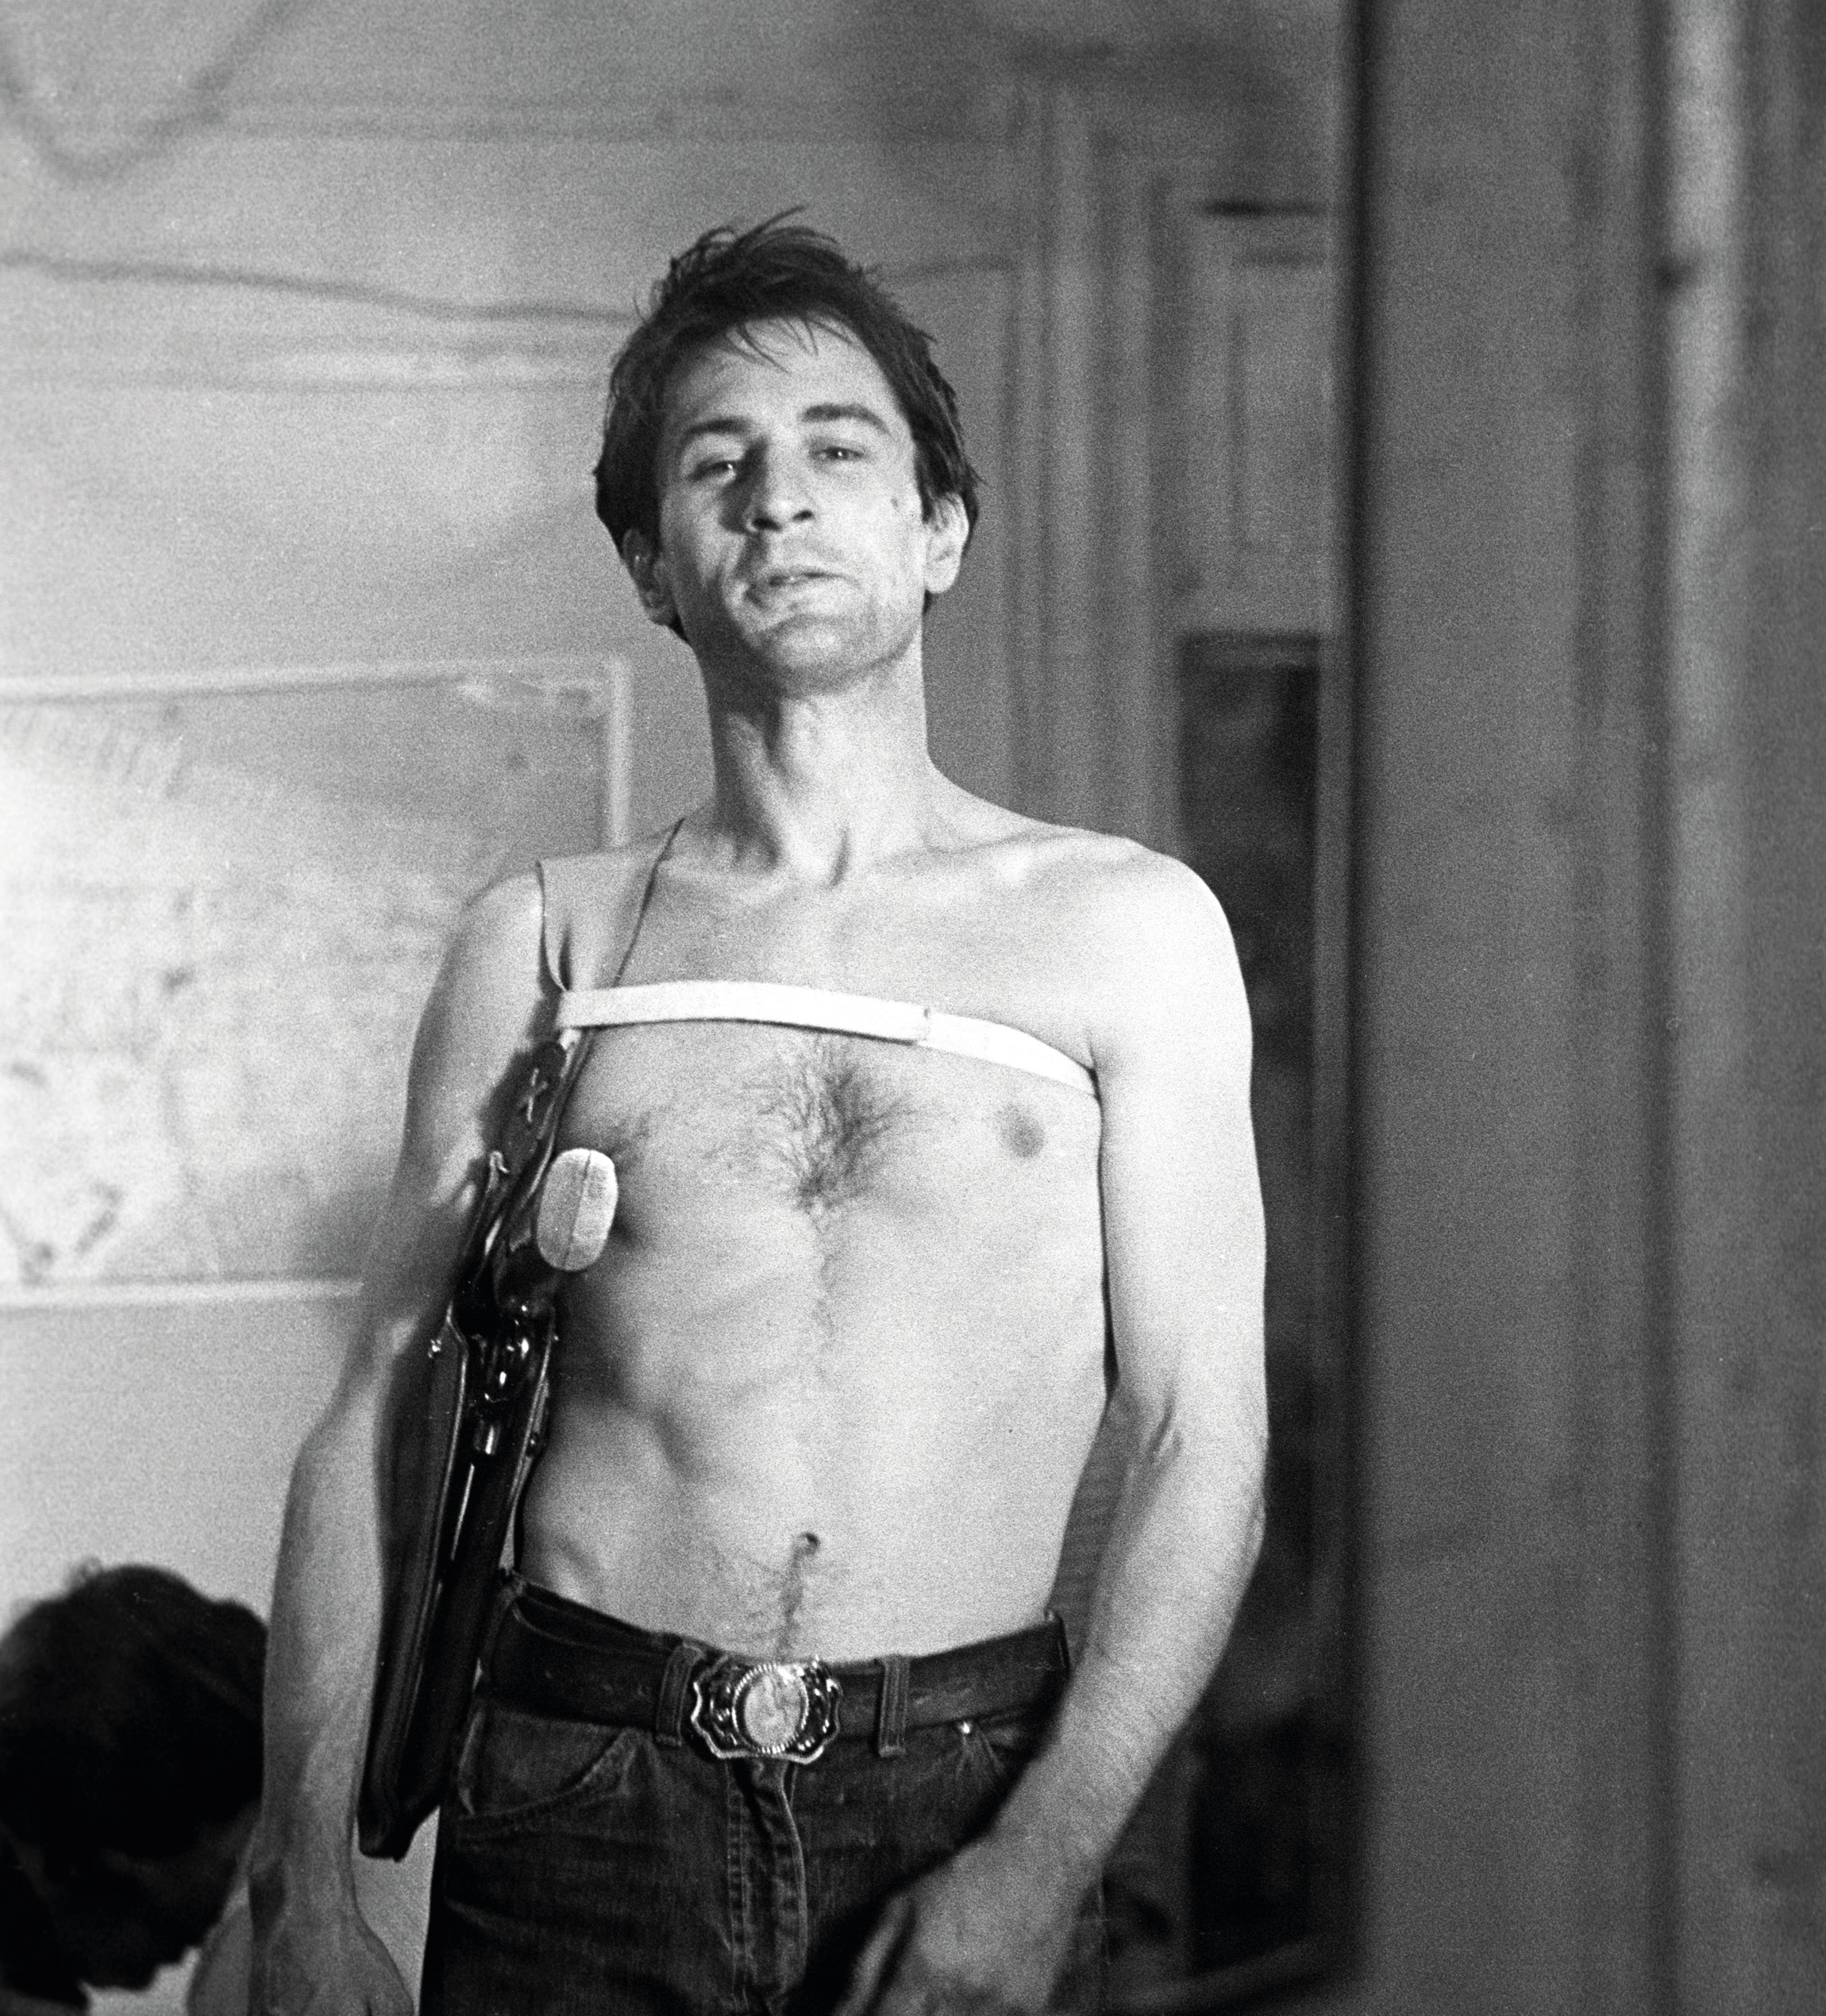 ©Steve Schapiro, »You Talkin to Me«, Robert De Niro in Taxi Driver